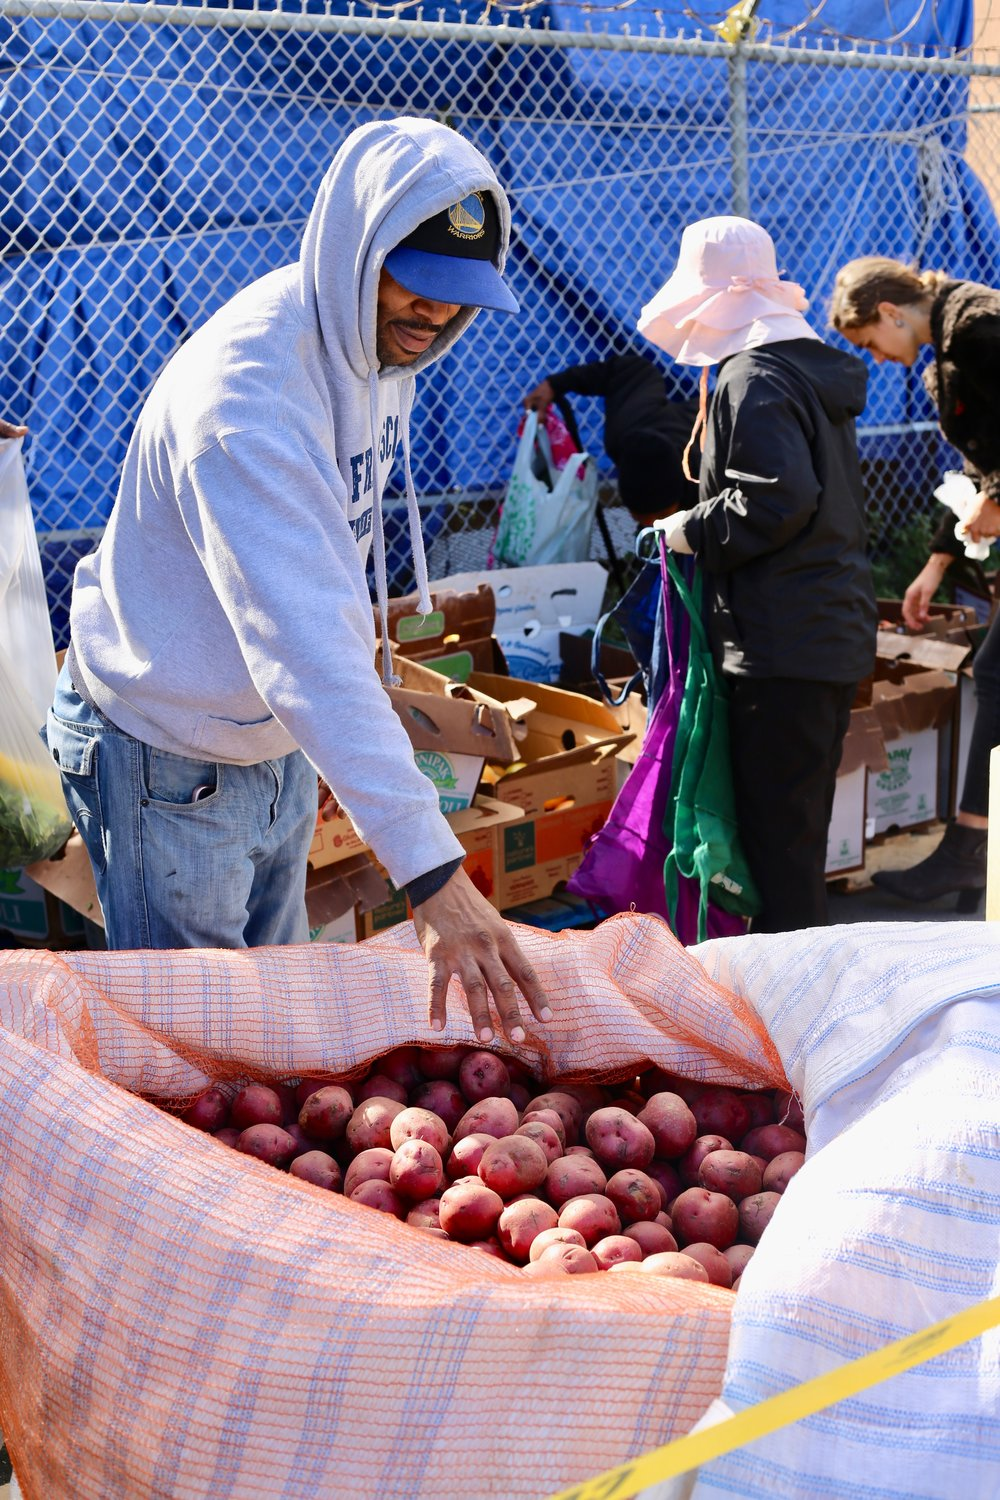 Andre inspecting potatoes at a weekly free farmers market. Photo by Colette Krey